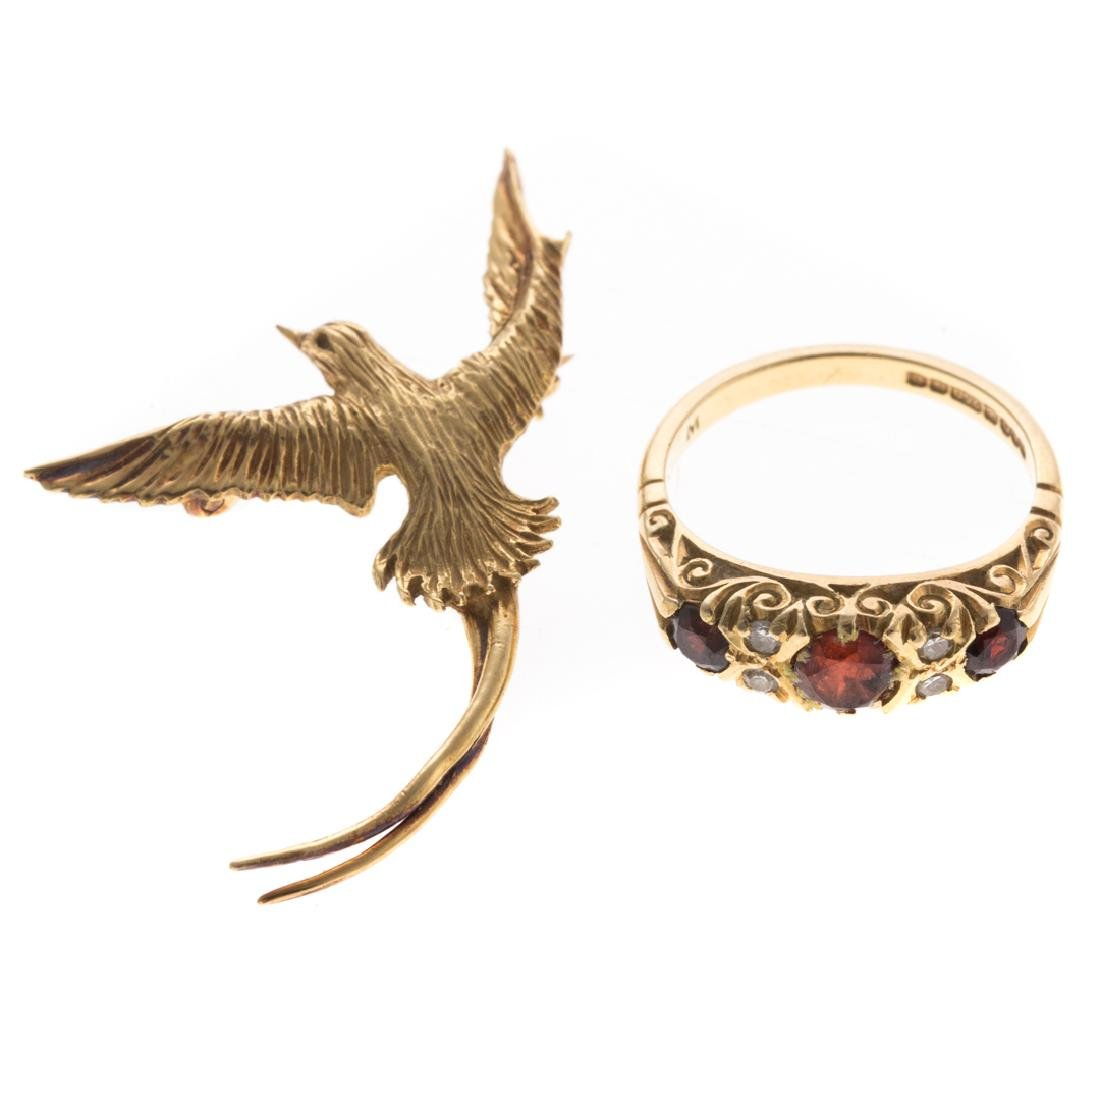 A Lady's Ruby Ring & Bird Pin in 18K